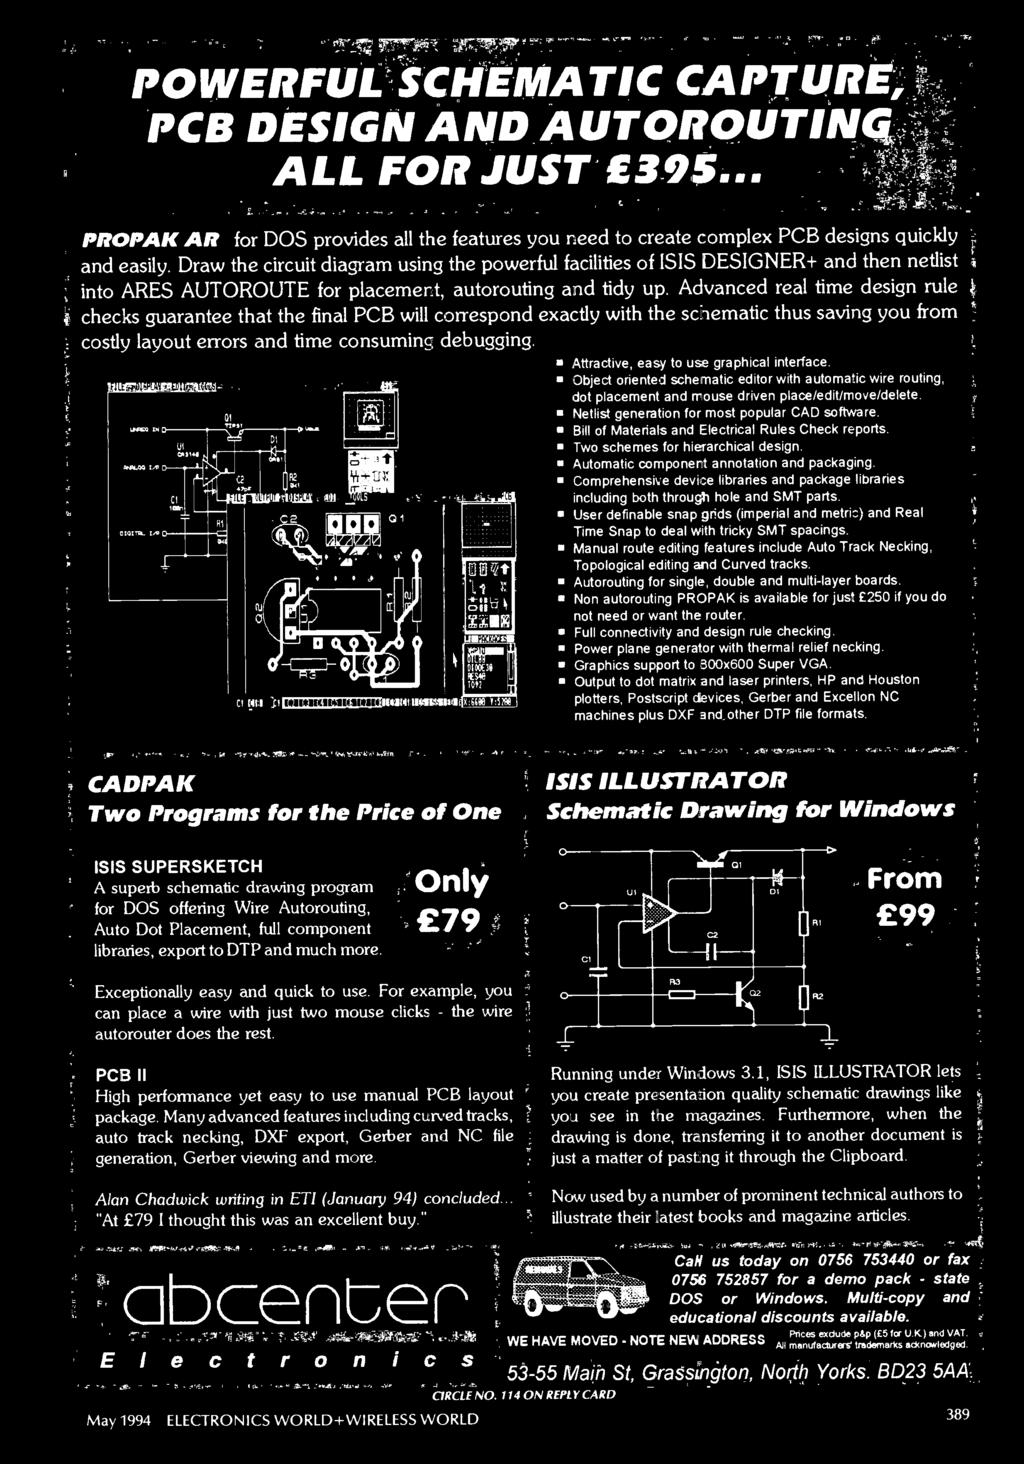 World Wireless Pdf Kembrey Wiring Systems Netlist Generation For Most Popular Cad Software Bill Of Materials And Electrical Rules Check Reports